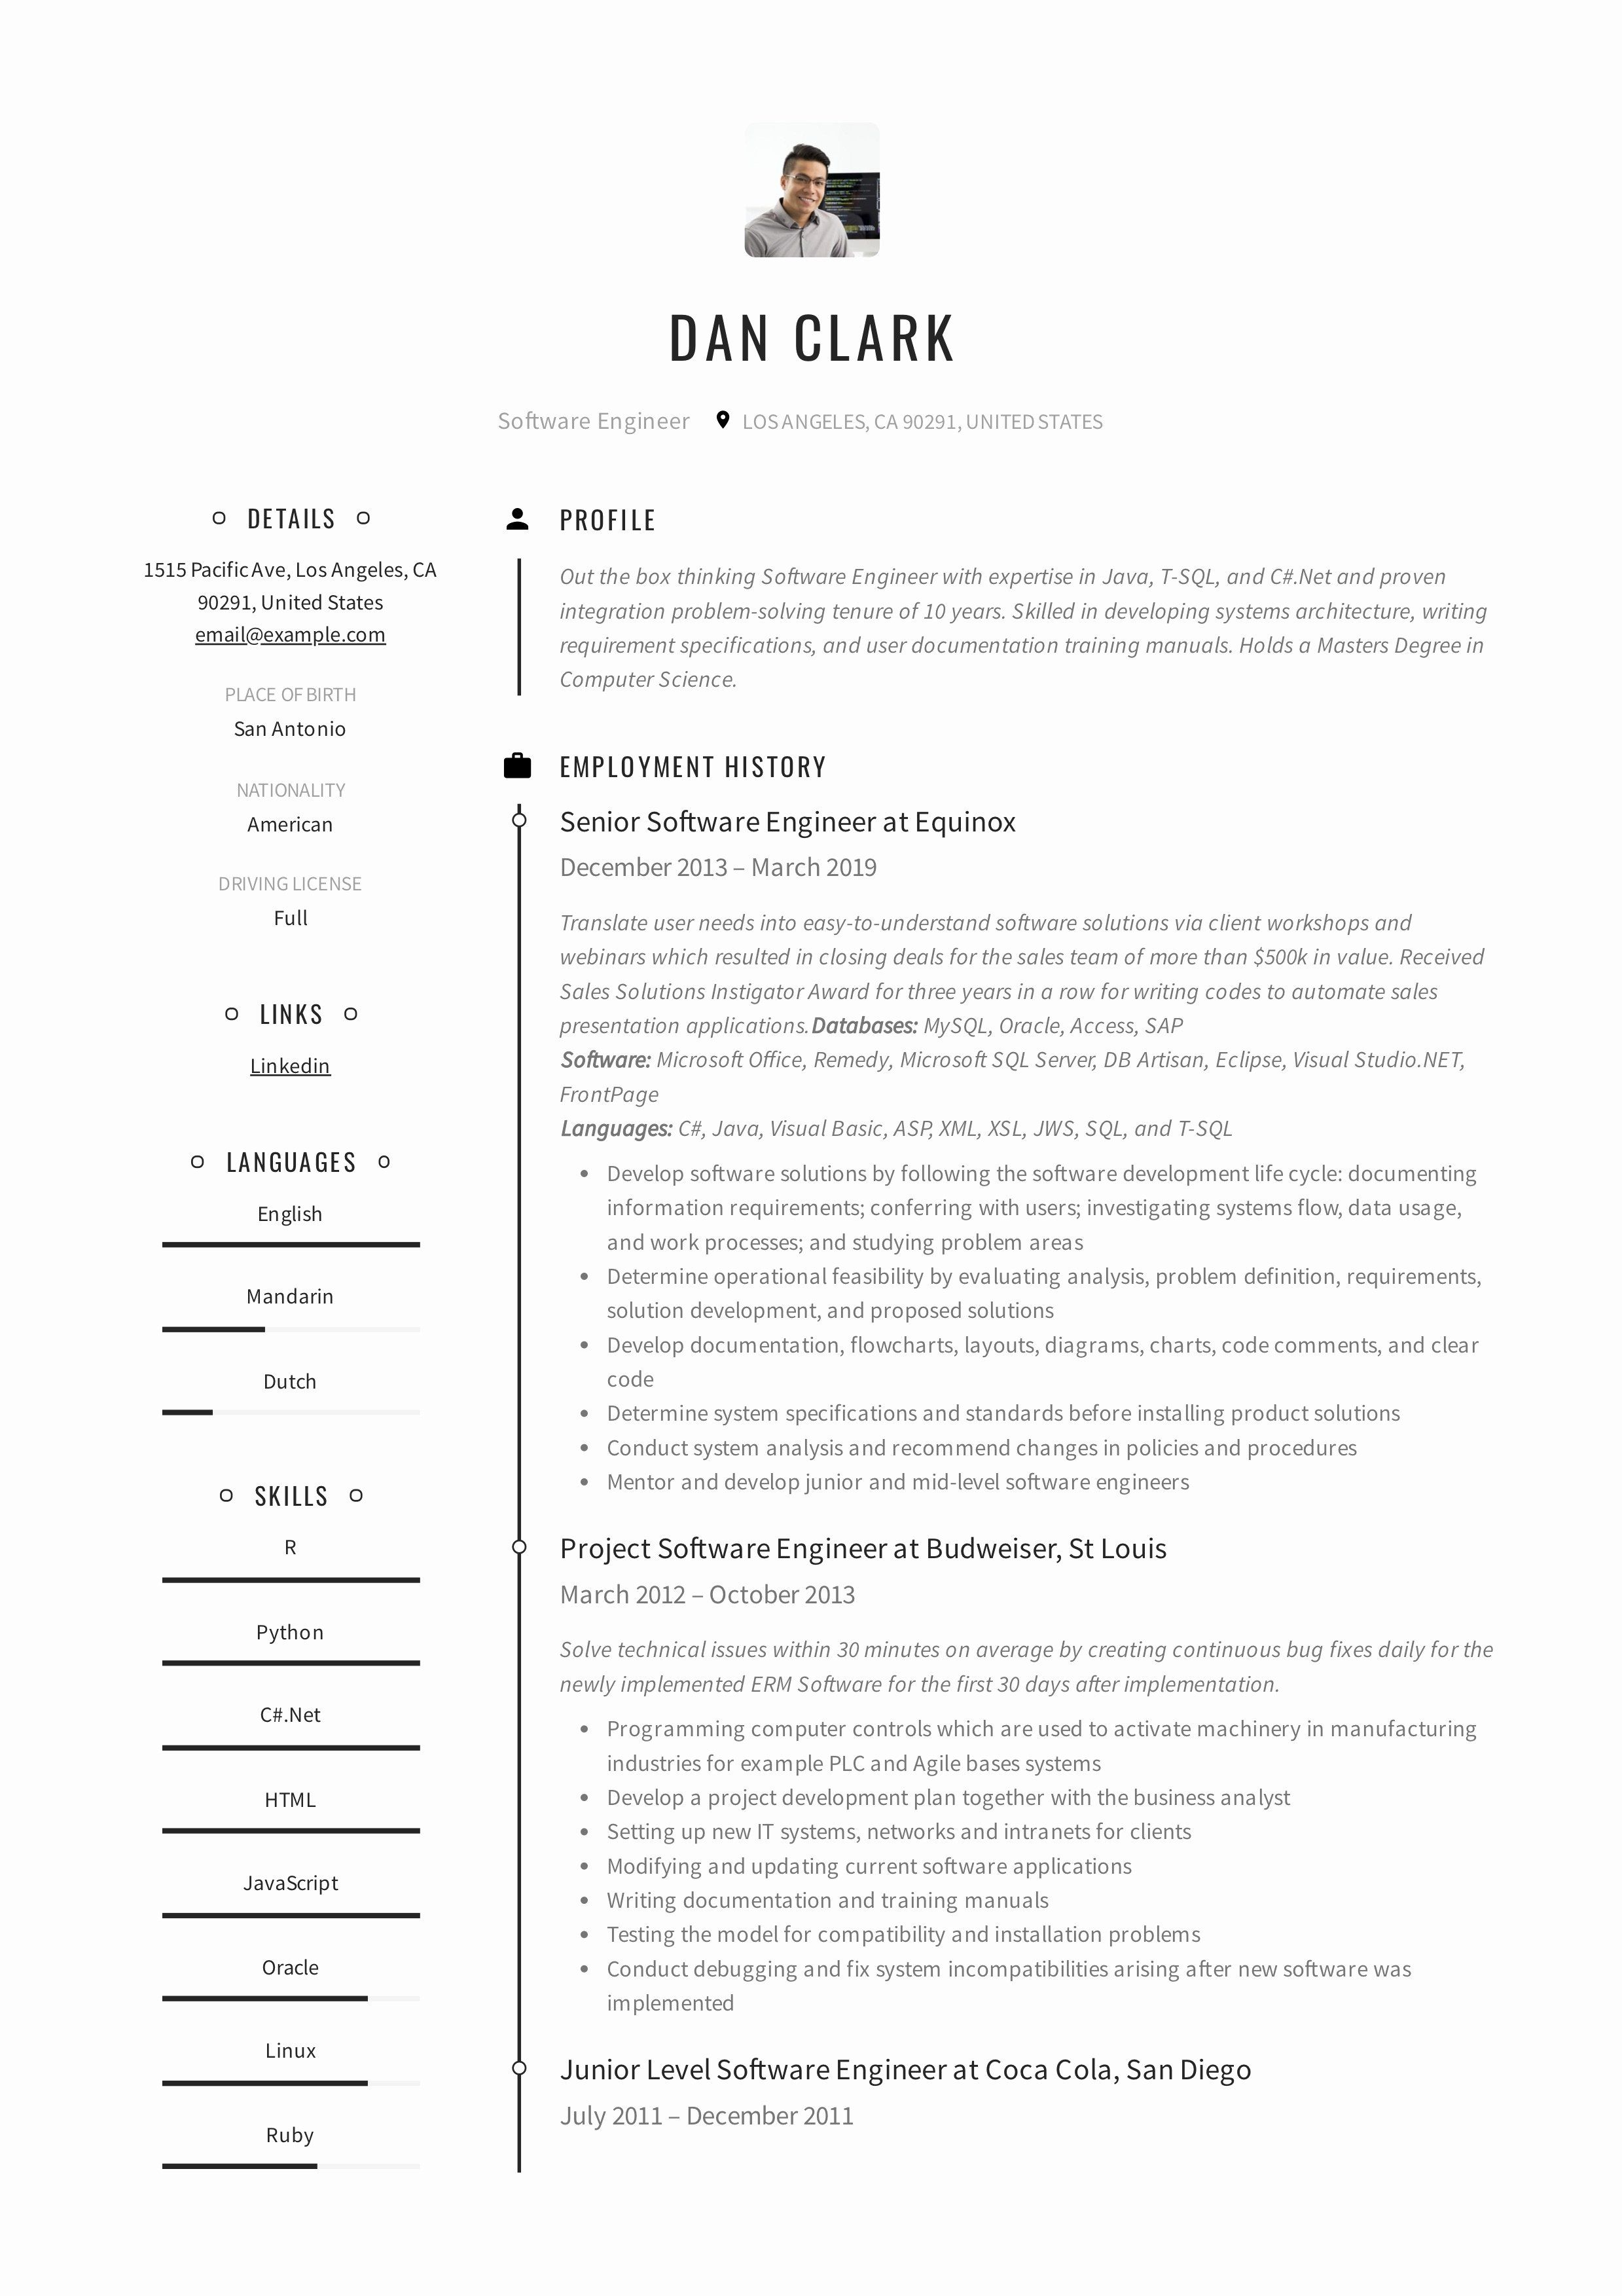 Free Resume Templates Pdf Awesome Resume Templates [2019